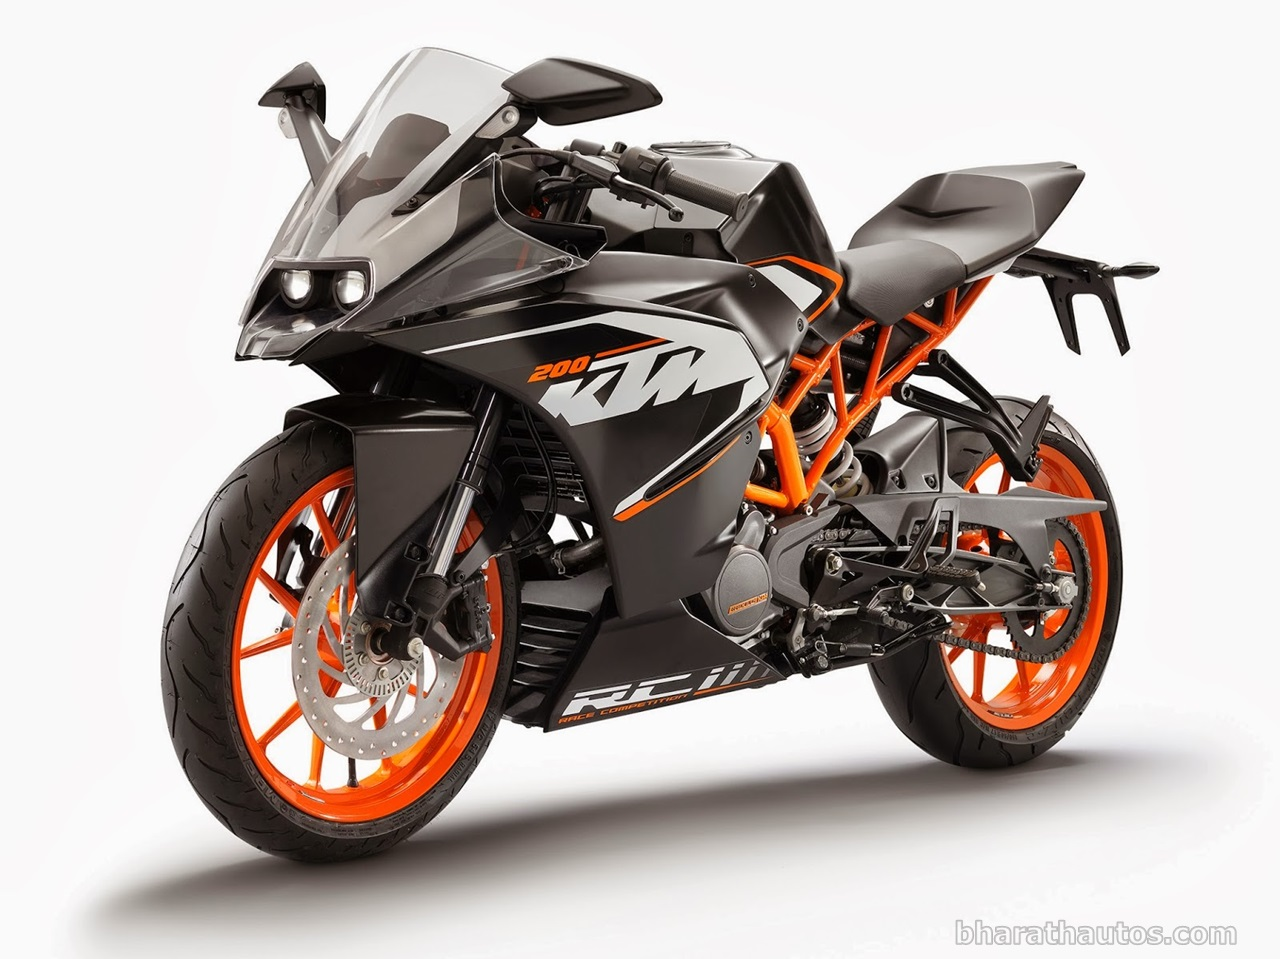 about ktm Ktm arai snipe r helmet ktm arai snipe r helmet loaded with below features: racing technology for the road dry-co ₹75,00000 ₹68,00000.